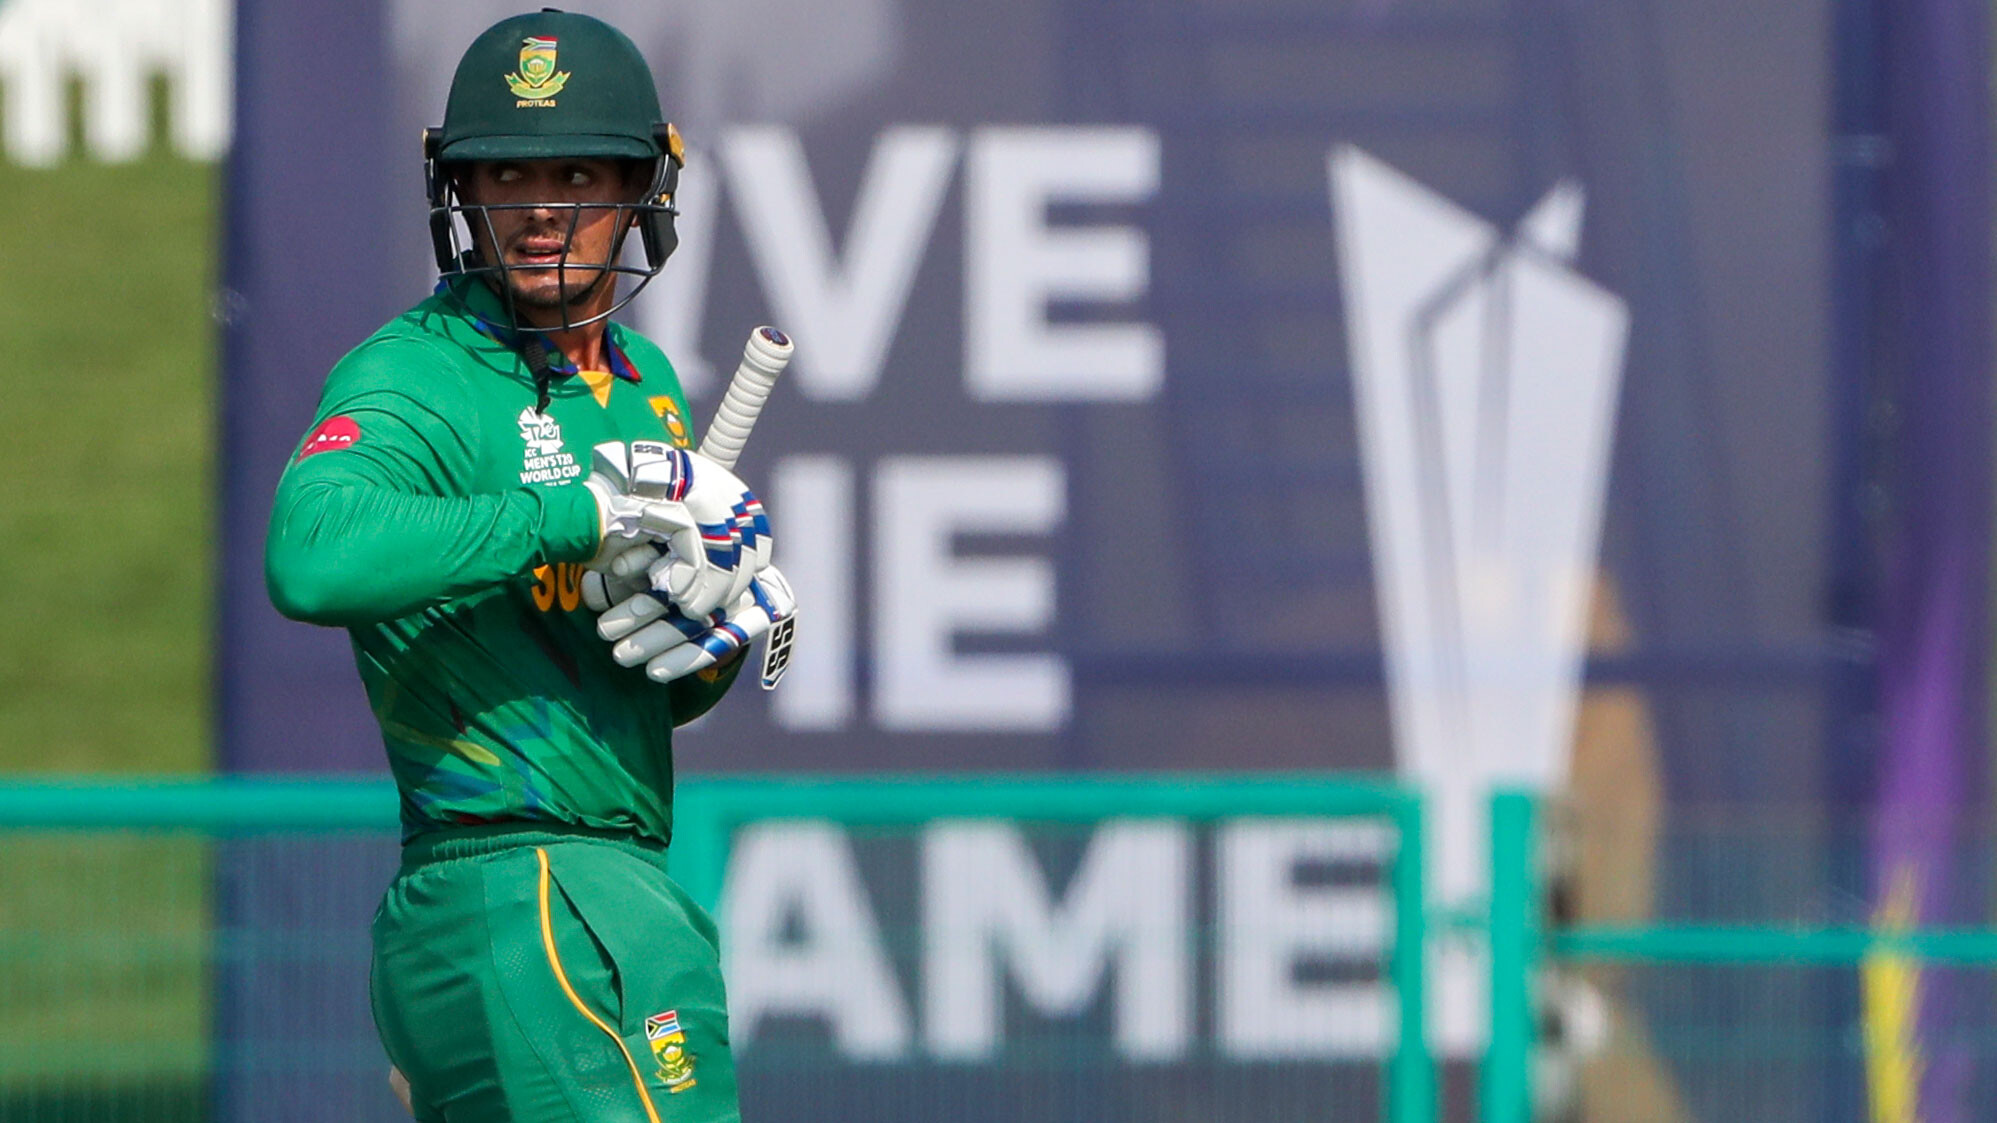 South African cricketer Quinton de Kock declines to take a knee at the T20 World Cup, despite call to 'stand against racism'